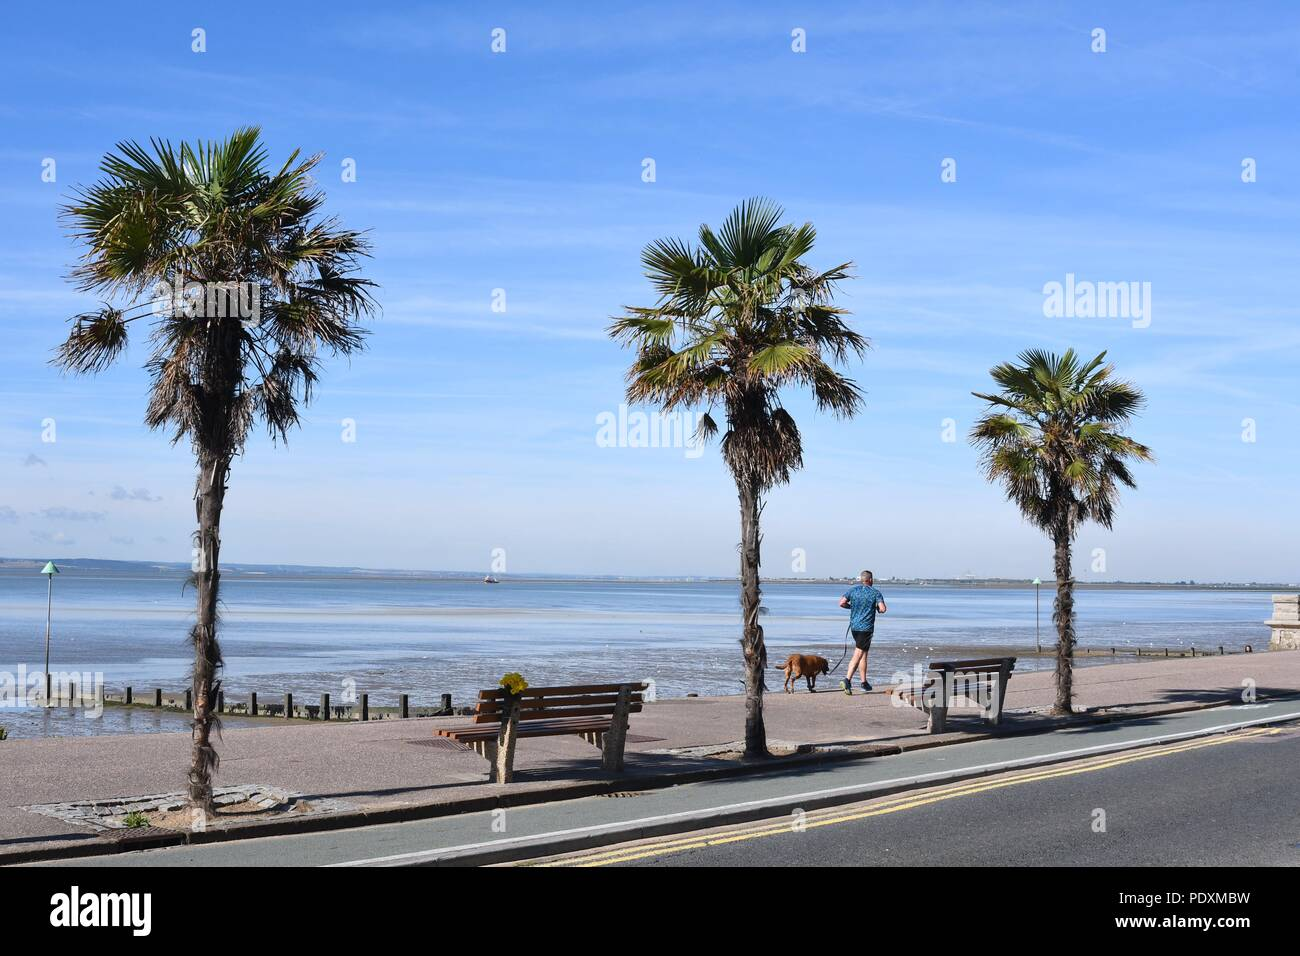 Southend On Sea Es Uk 11th August 2018 Uk Weather A Warm Start To The Day In Southend A View Of A Man Jogging With His Dog Along The Sea Front